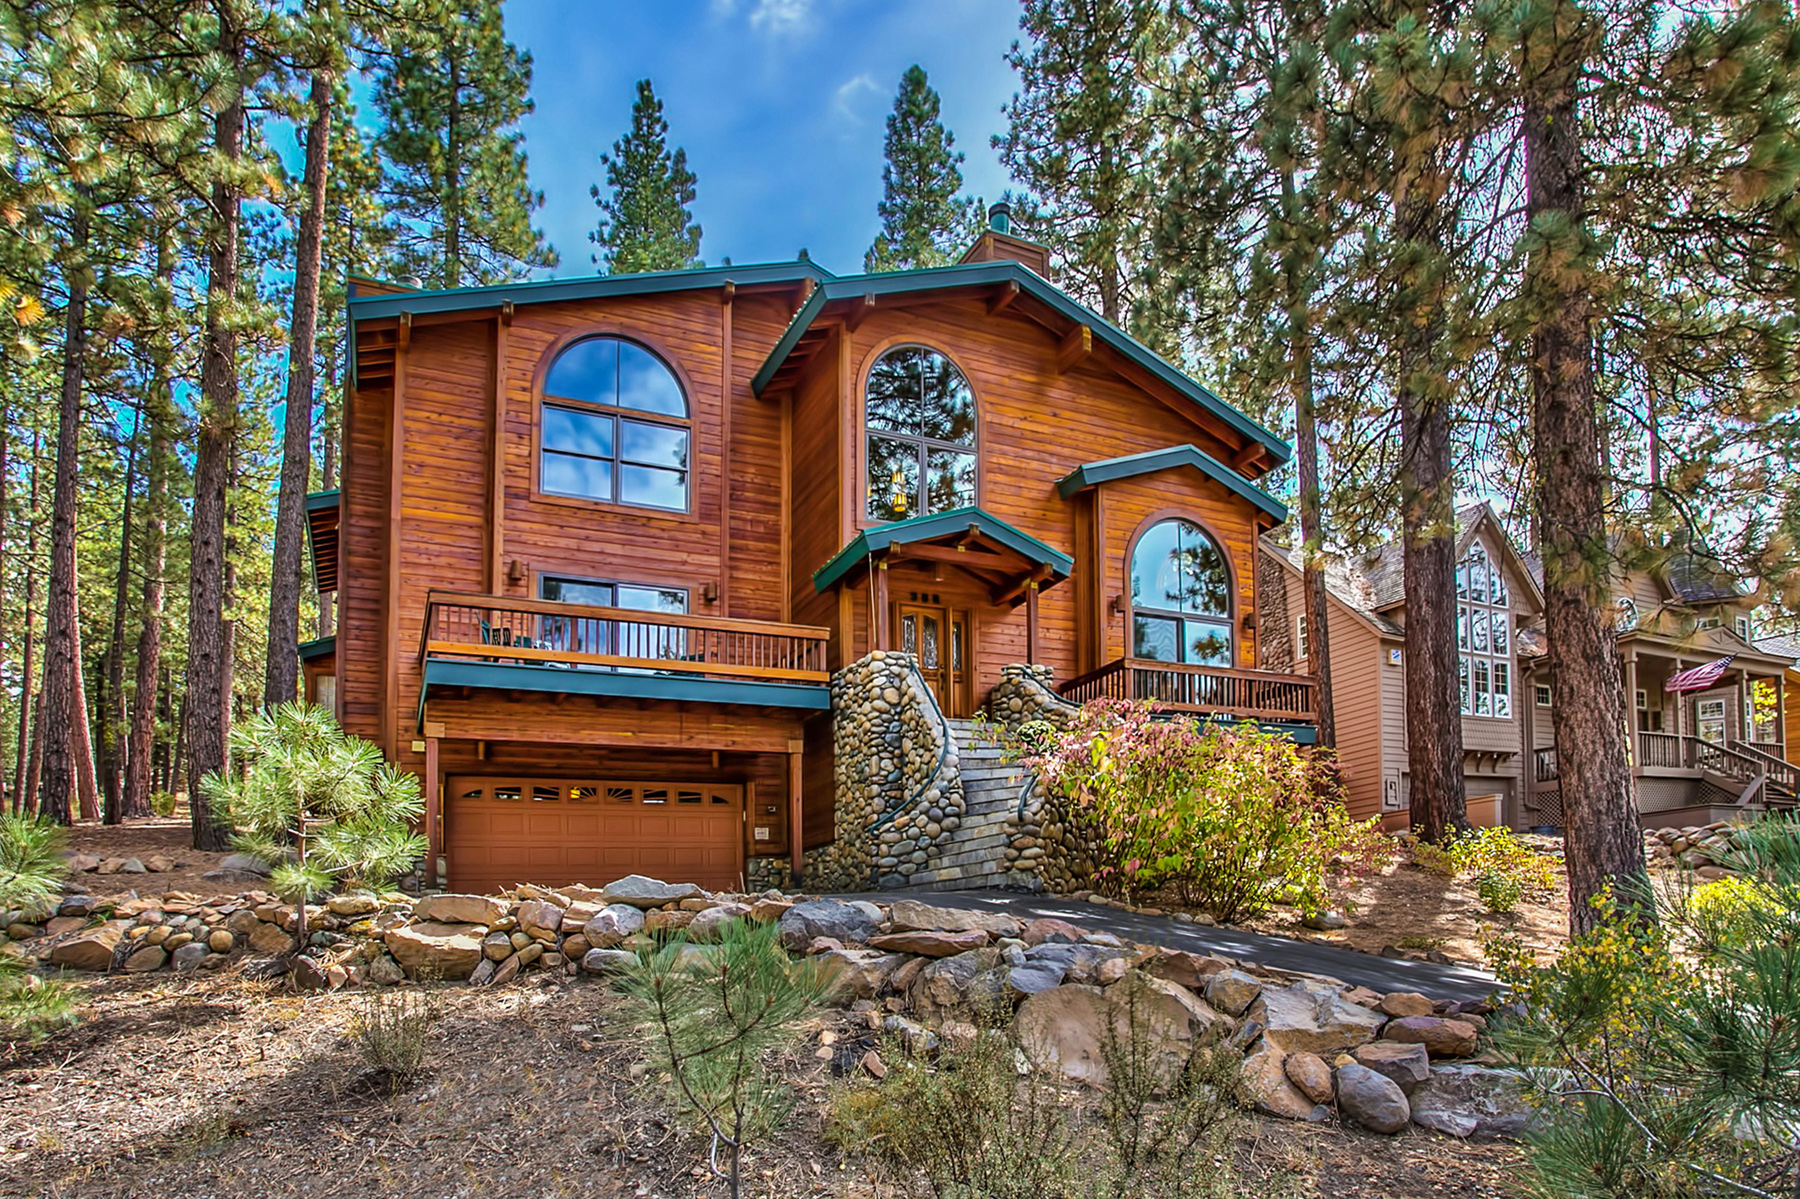 Single Family Home for Sale at 386 Skidder Trail Northstar, Truckee, California 96161 United States